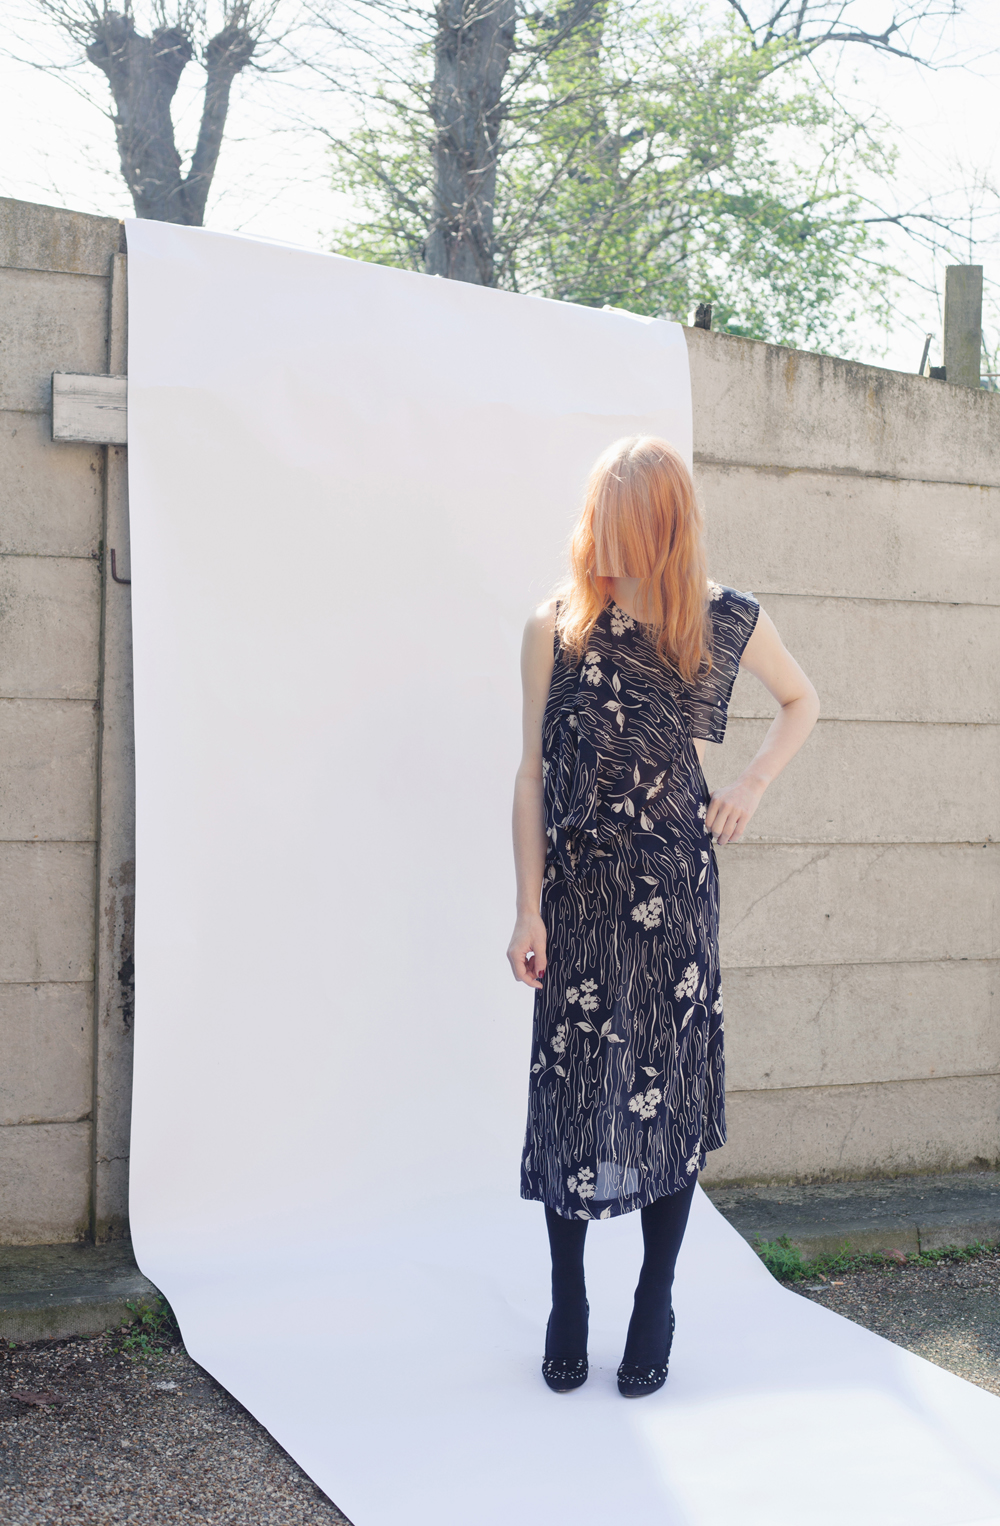 "DRESS label Crisis Collection Look book Pixelated ARTISANAL RESCUE DRESS SERIES                     0   false       18 pt   18 pt   0   0     false   false   false                                       /* Style Definitions */ table.MsoNormalTable 	{mso-style-name:""Table Normal""; 	mso-tstyle-rowband-size:0; 	mso-tstyle-colband-size:0; 	mso-style-noshow:yes; 	mso-style-parent:""""; 	mso-padding-alt:0cm 5.4pt 0cm 5.4pt; 	mso-para-margin:0cm; 	mso-para-margin-bottom:.0001pt; 	mso-pagination:widow-orphan; 	font-size:12.0pt; 	font-family:""Times New Roman""; 	mso-ascii-font-family:Cambria; 	mso-ascii-theme-font:minor-latin; 	mso-fareast-font-family:""Times New Roman""; 	mso-fareast-theme-font:minor-fareast; 	mso-hansi-font-family:Cambria; 	mso-hansi-theme-font:minor-latin;}      Rescue Dress 01  – Navy & White Viscose Flower Print Dress-Ltd"